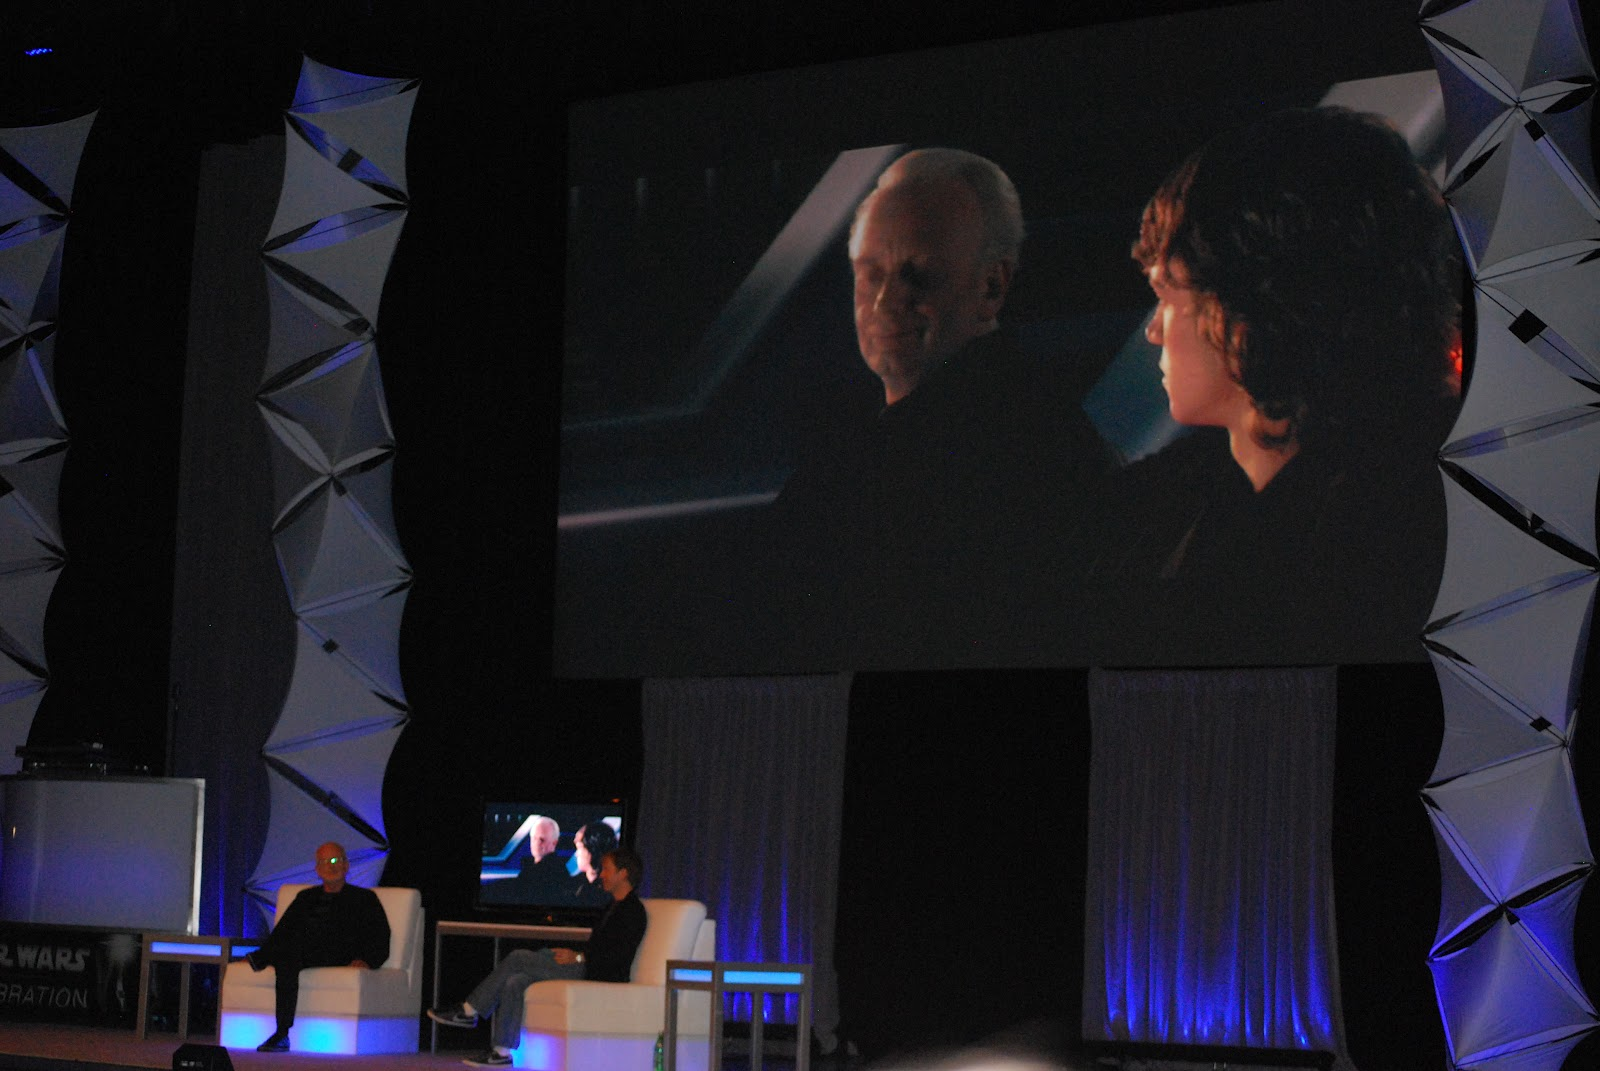 http://3.bp.blogspot.com/-LMruBuBMf6o/UDcfwSQ8YLI/AAAAAAAAA3E/D7DFjvo-XiQ/s1600/Star+Wars+Celebration+VI+Thursday+131.JPG